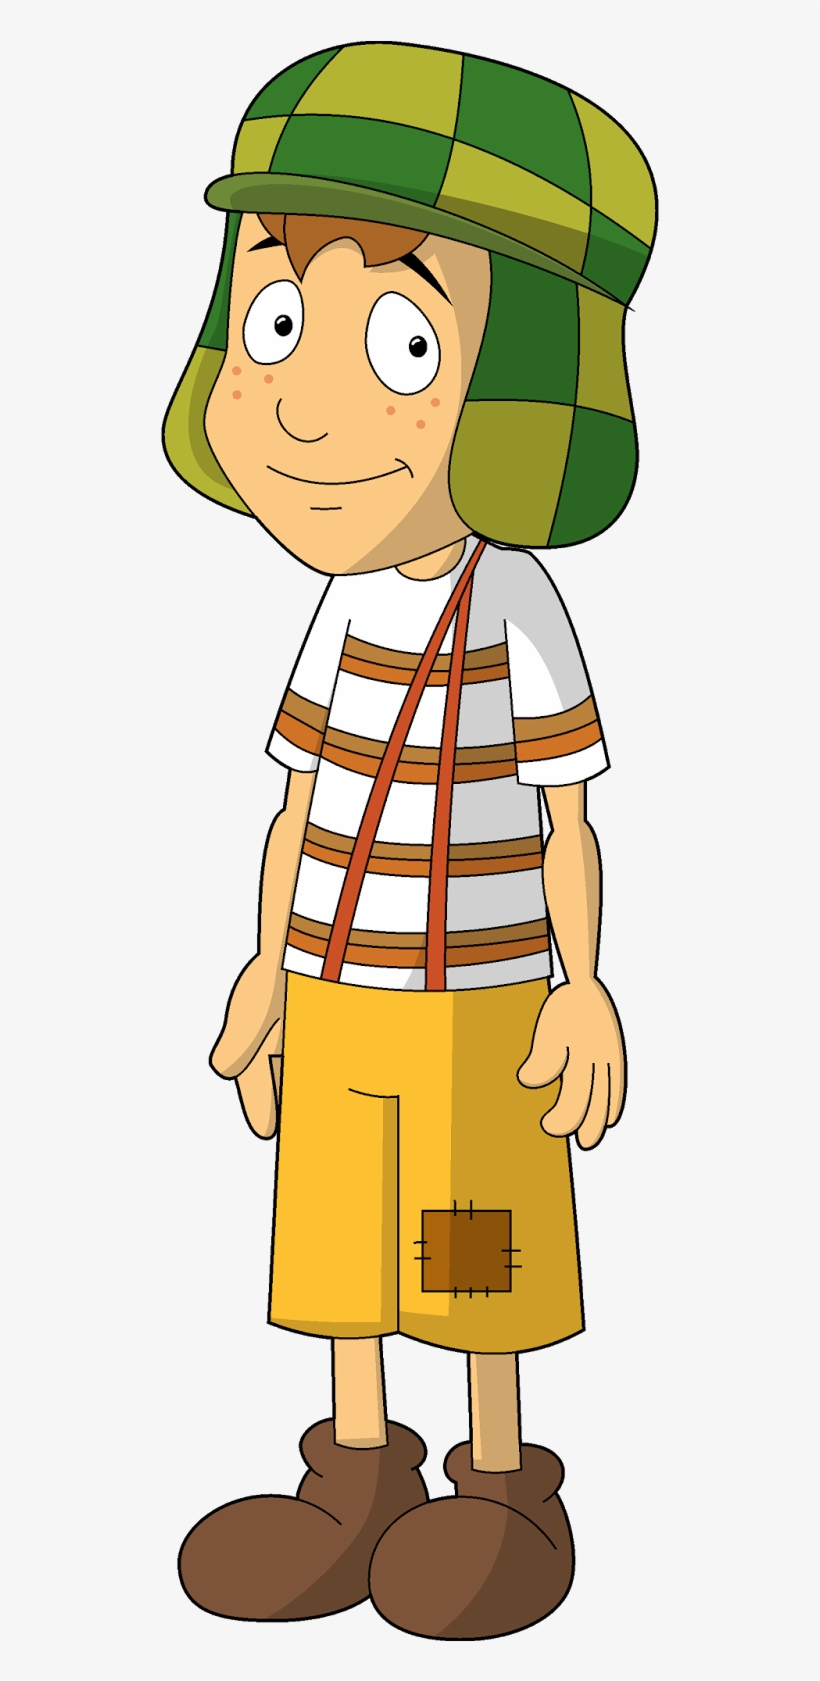 Chaves Png Chaves Em Desenho Animado Chaves 982x1600 Png